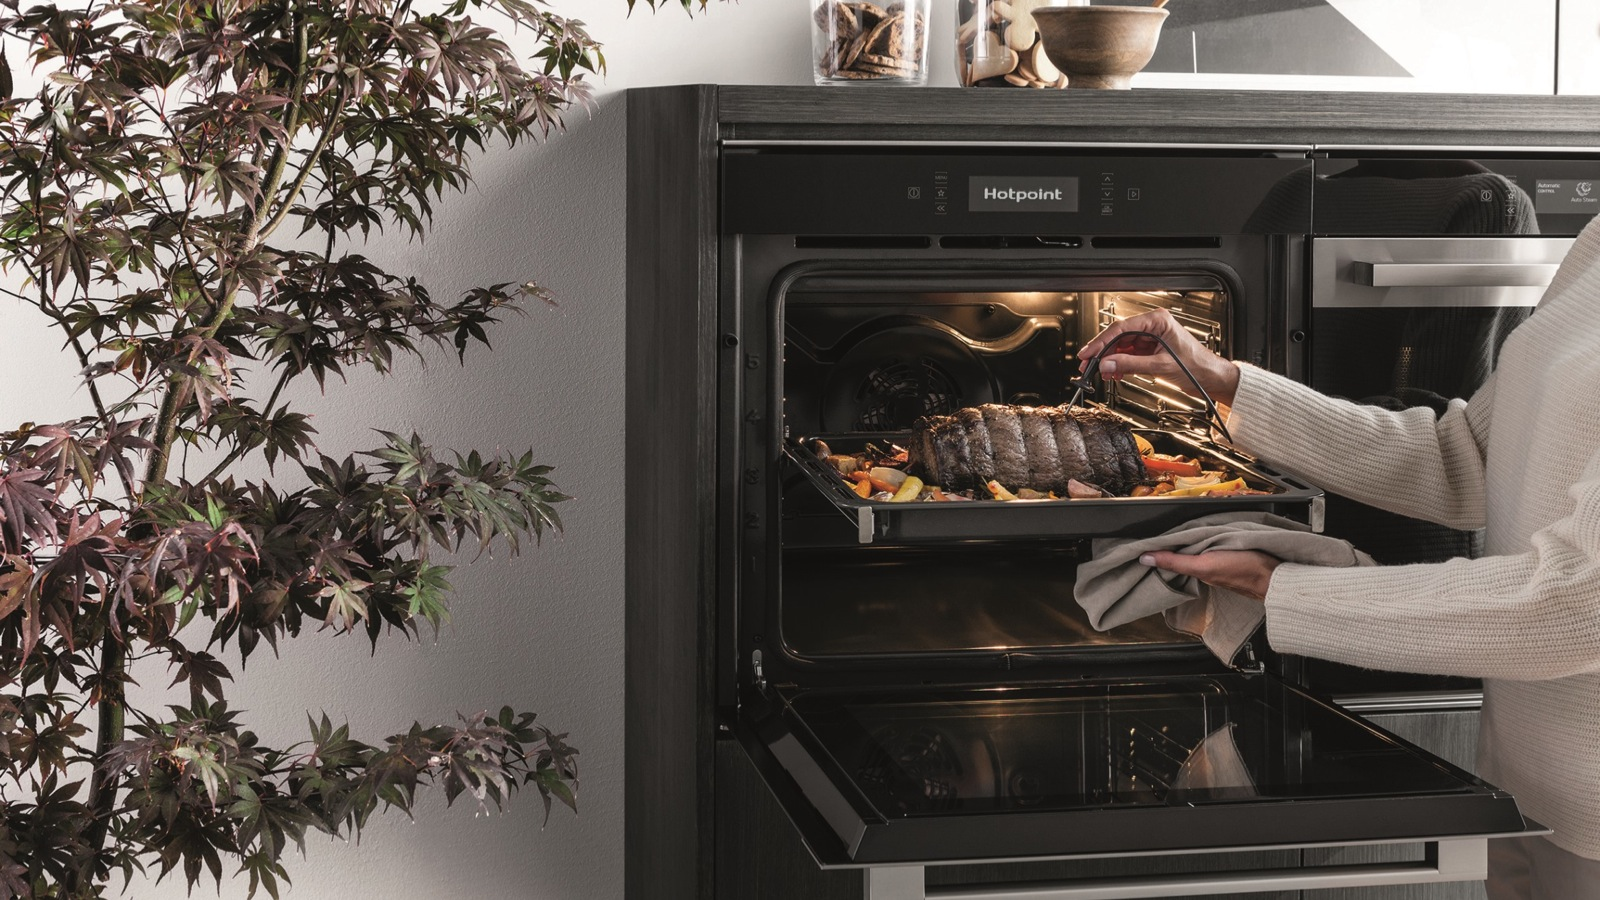 Built-in ovens: The joy of being single